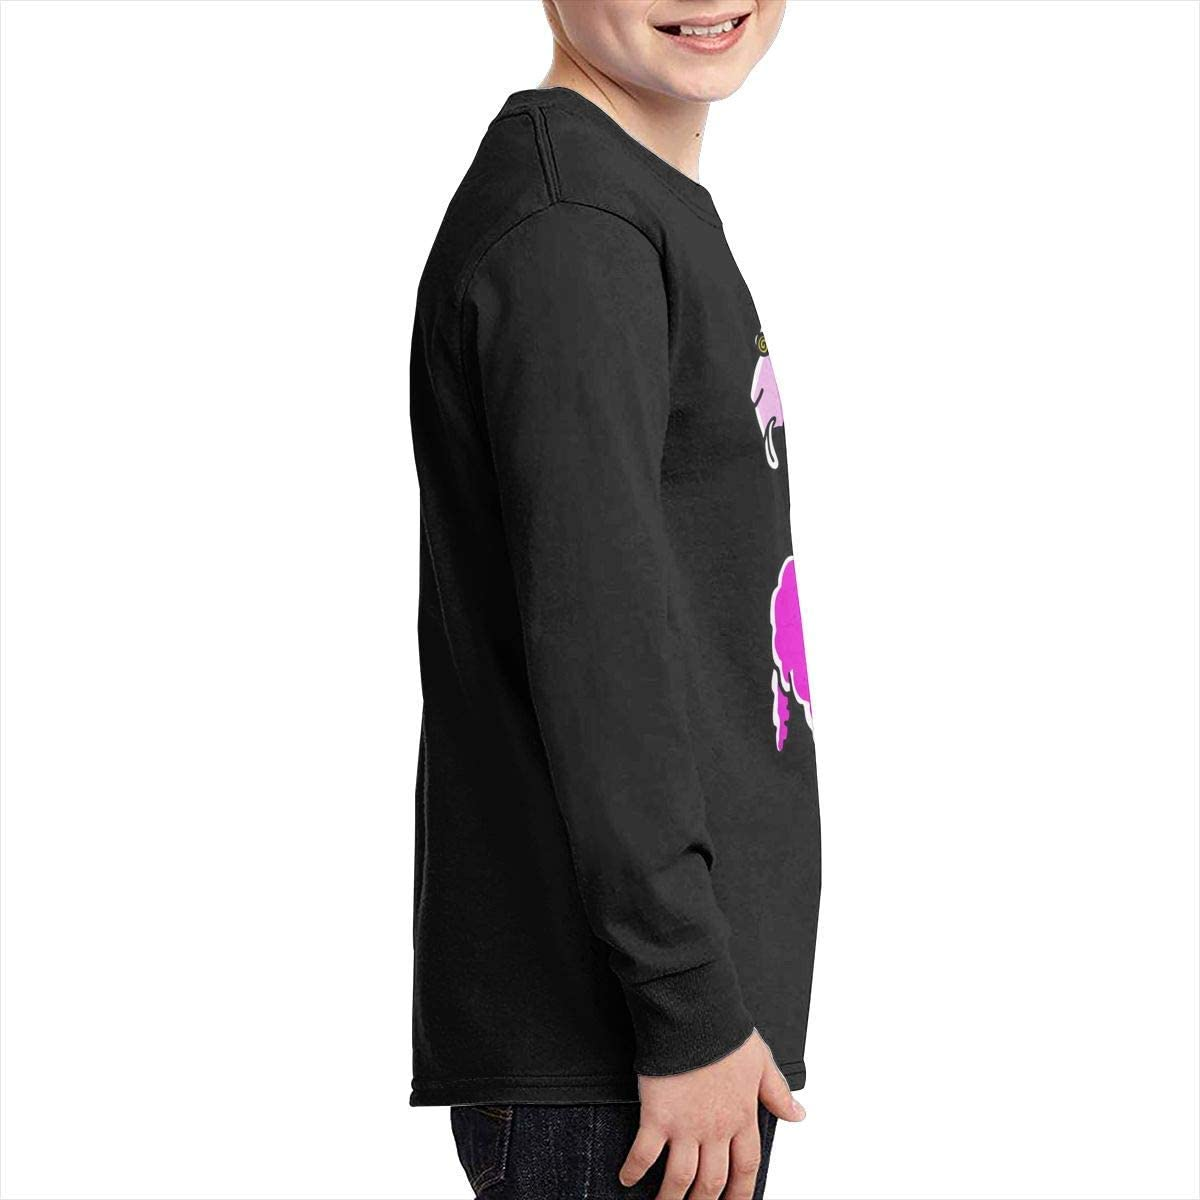 Boys Plain Long Sleeve Crew Neck Cotton Psychedelic Llama Top for Youth